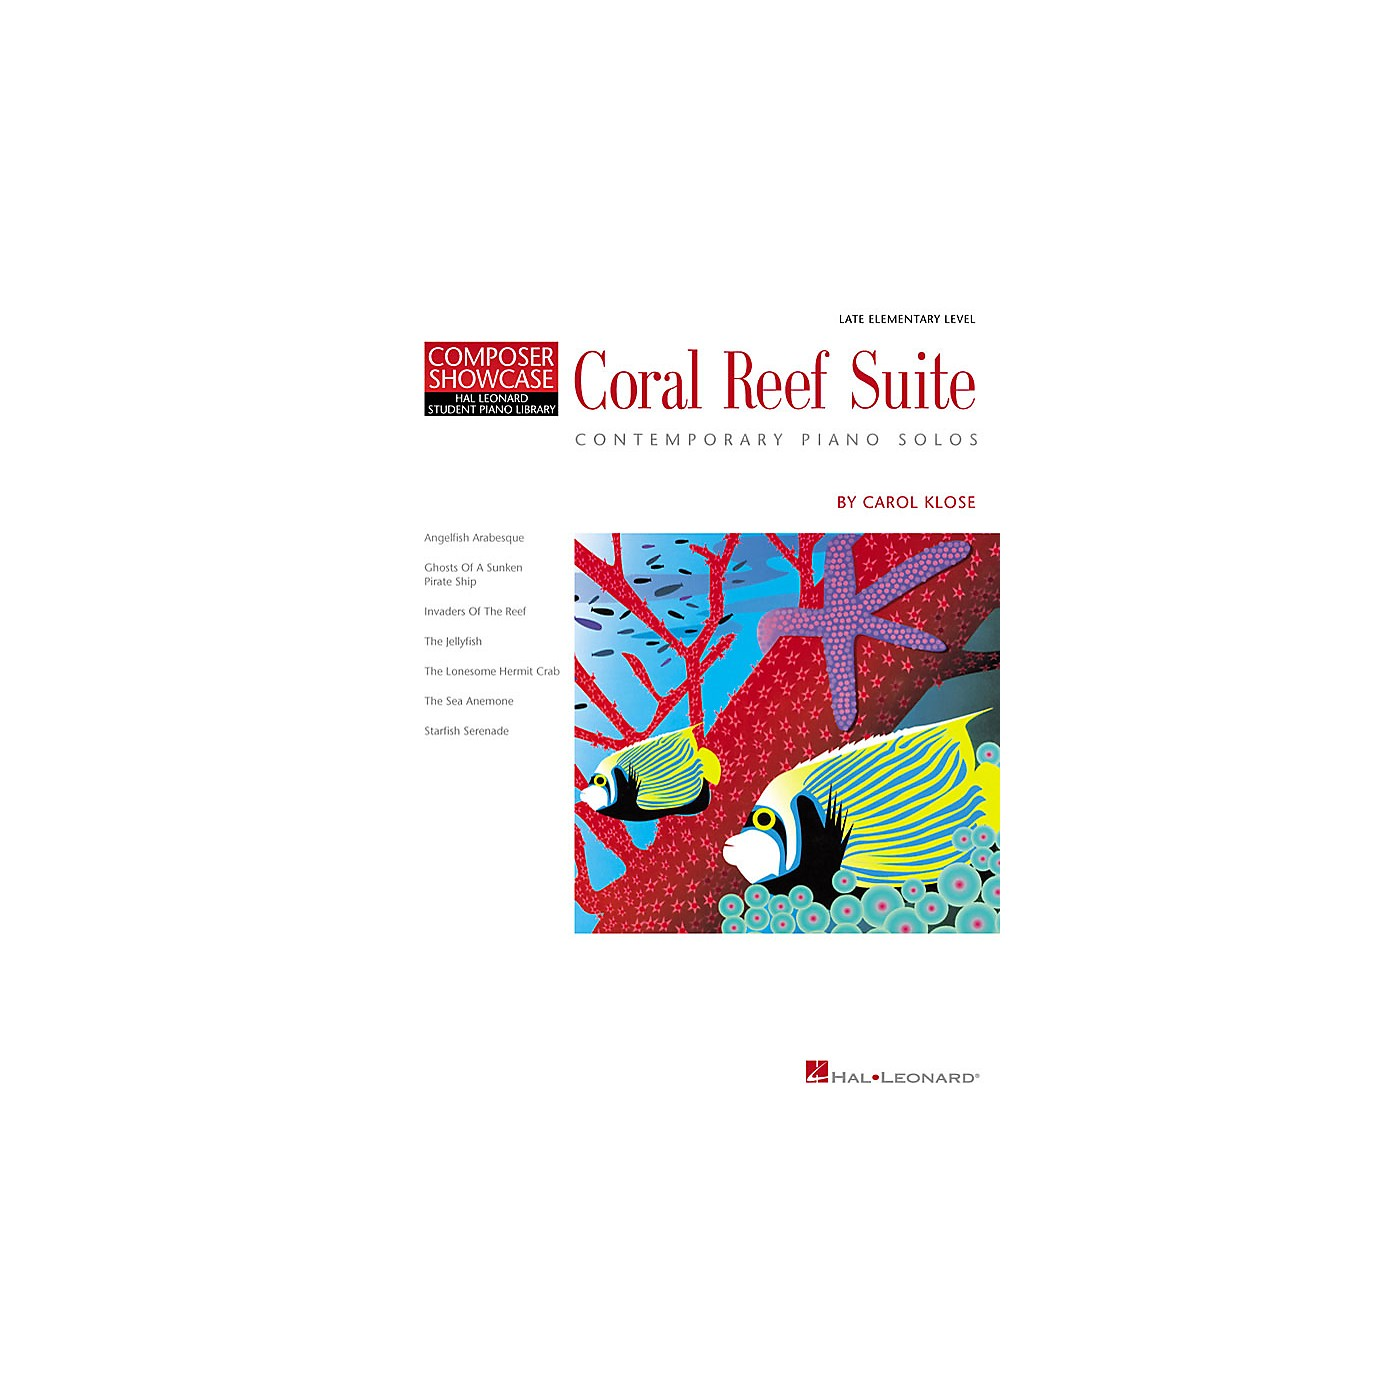 Hal Leonard Coral Reef Suite Piano Library Series by Carol Klose (Level Late Elem) thumbnail